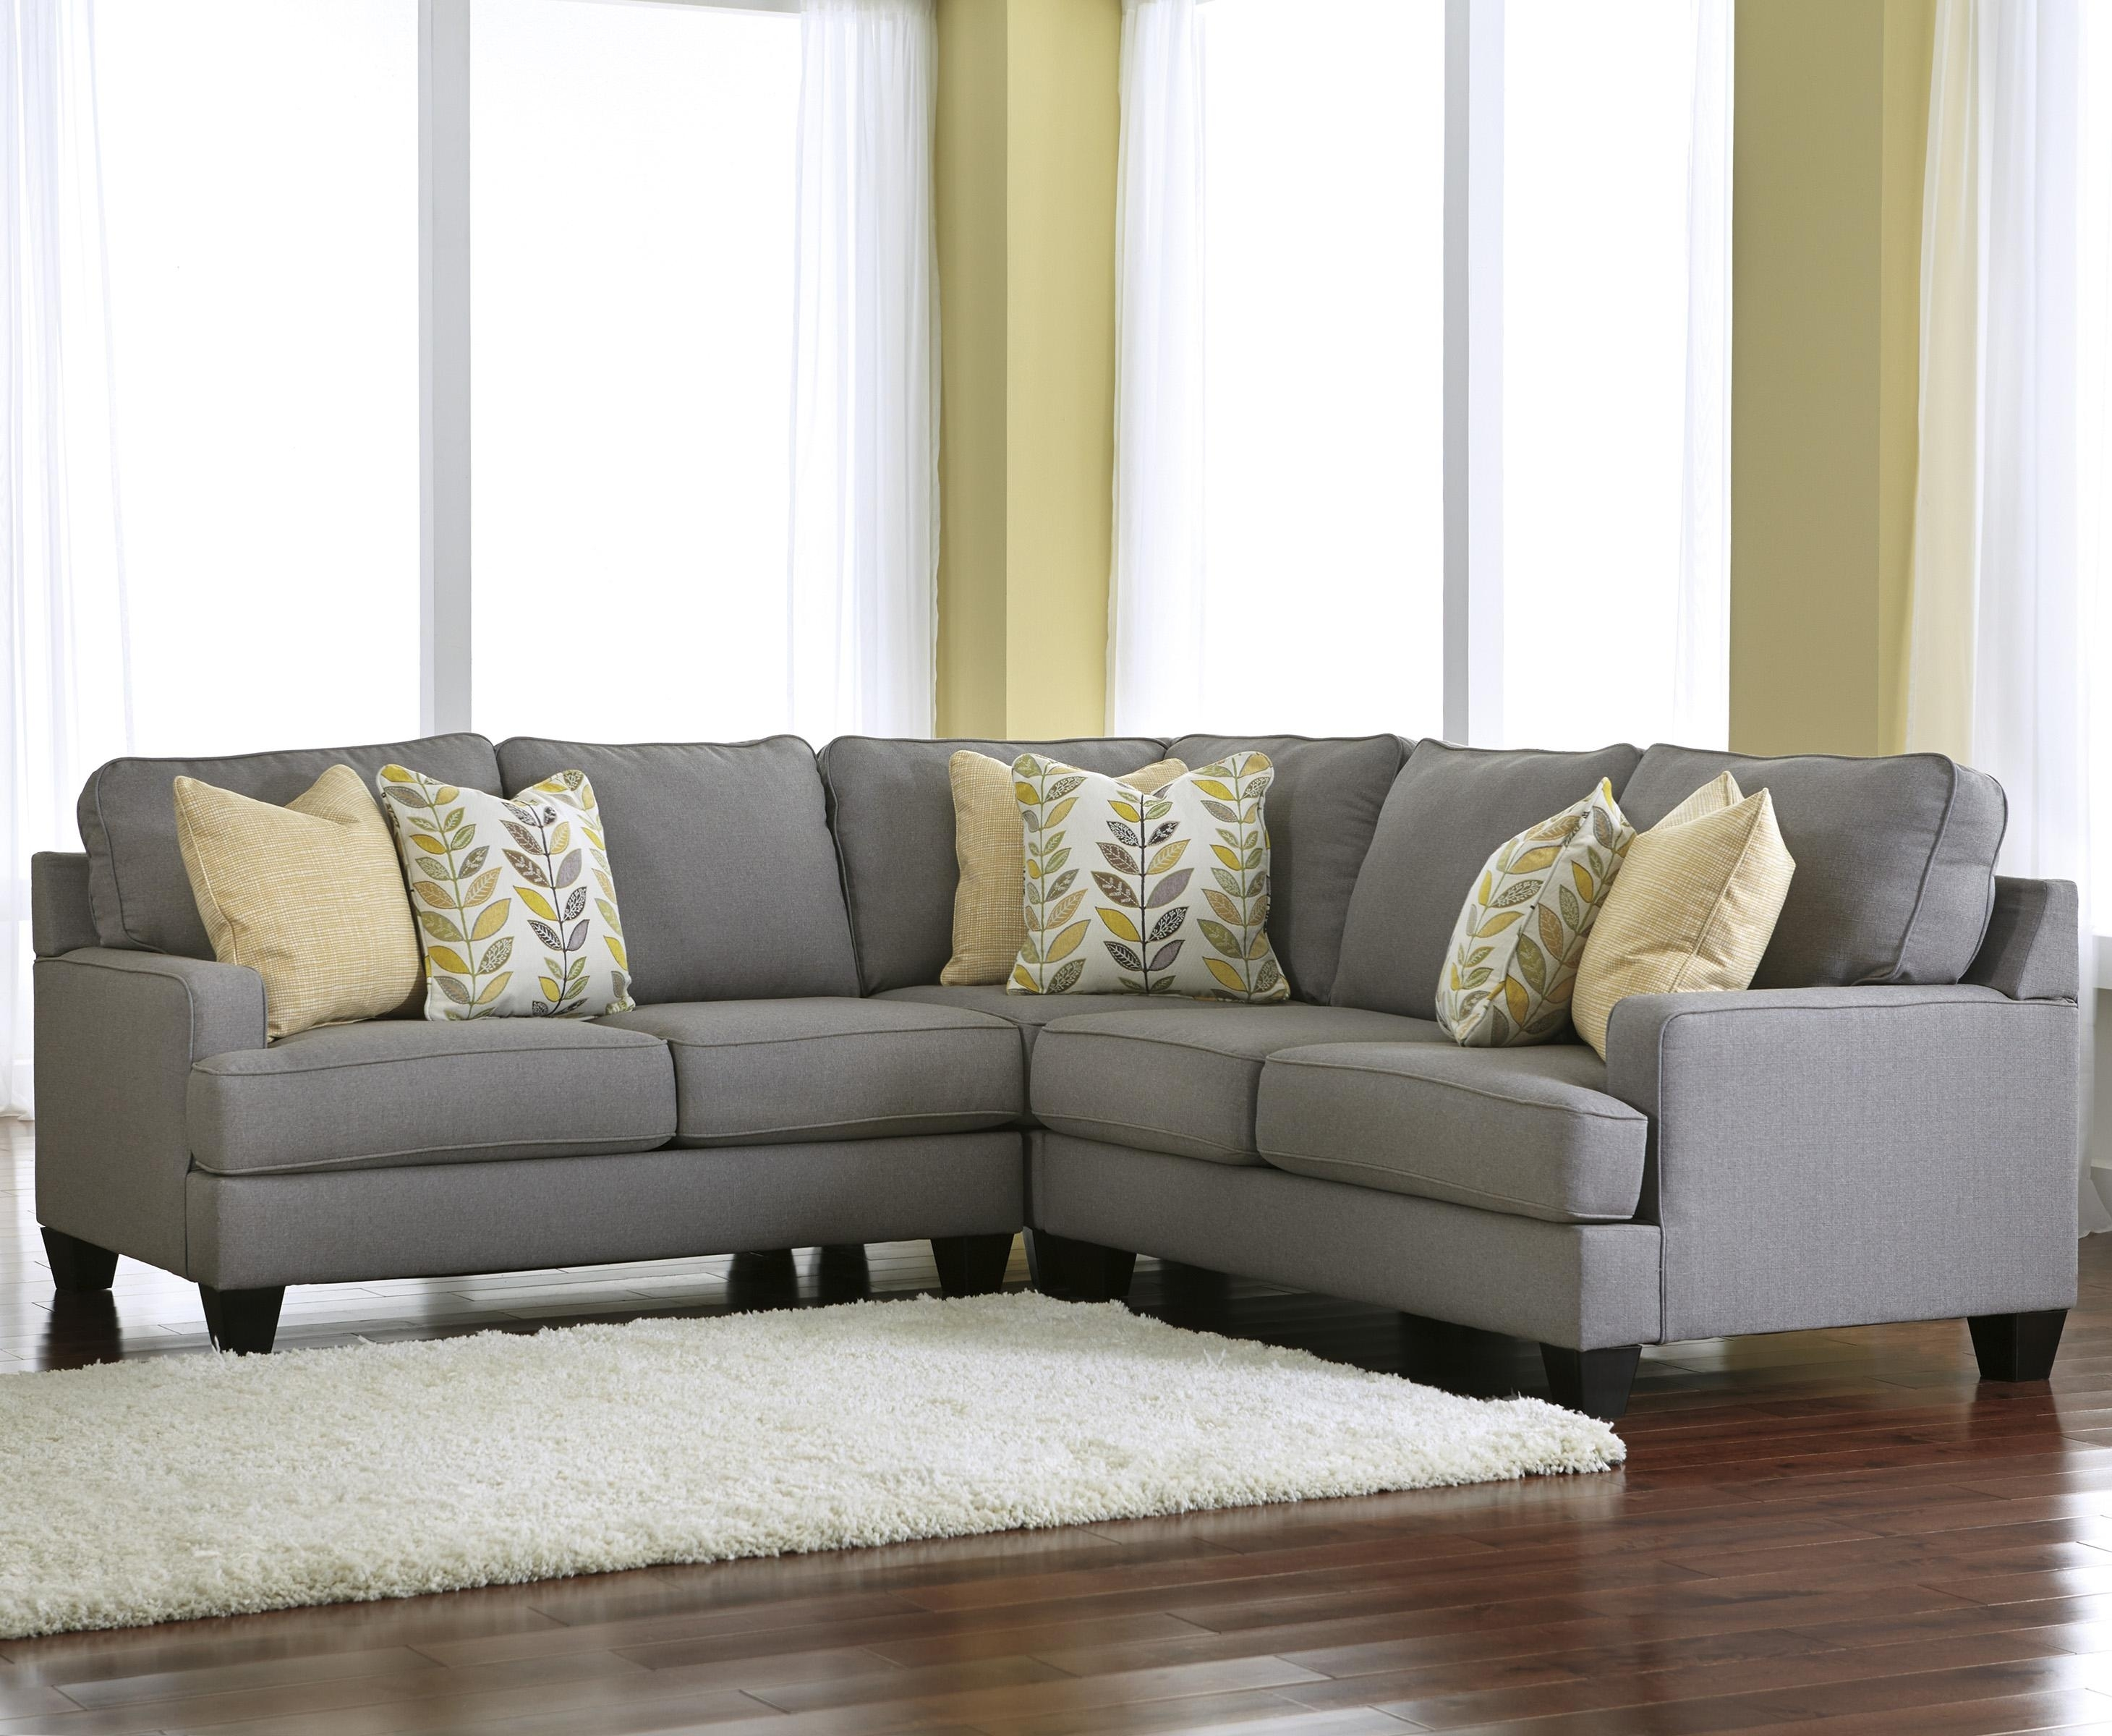 Featured Image of Sectional Sofas At Birmingham Al